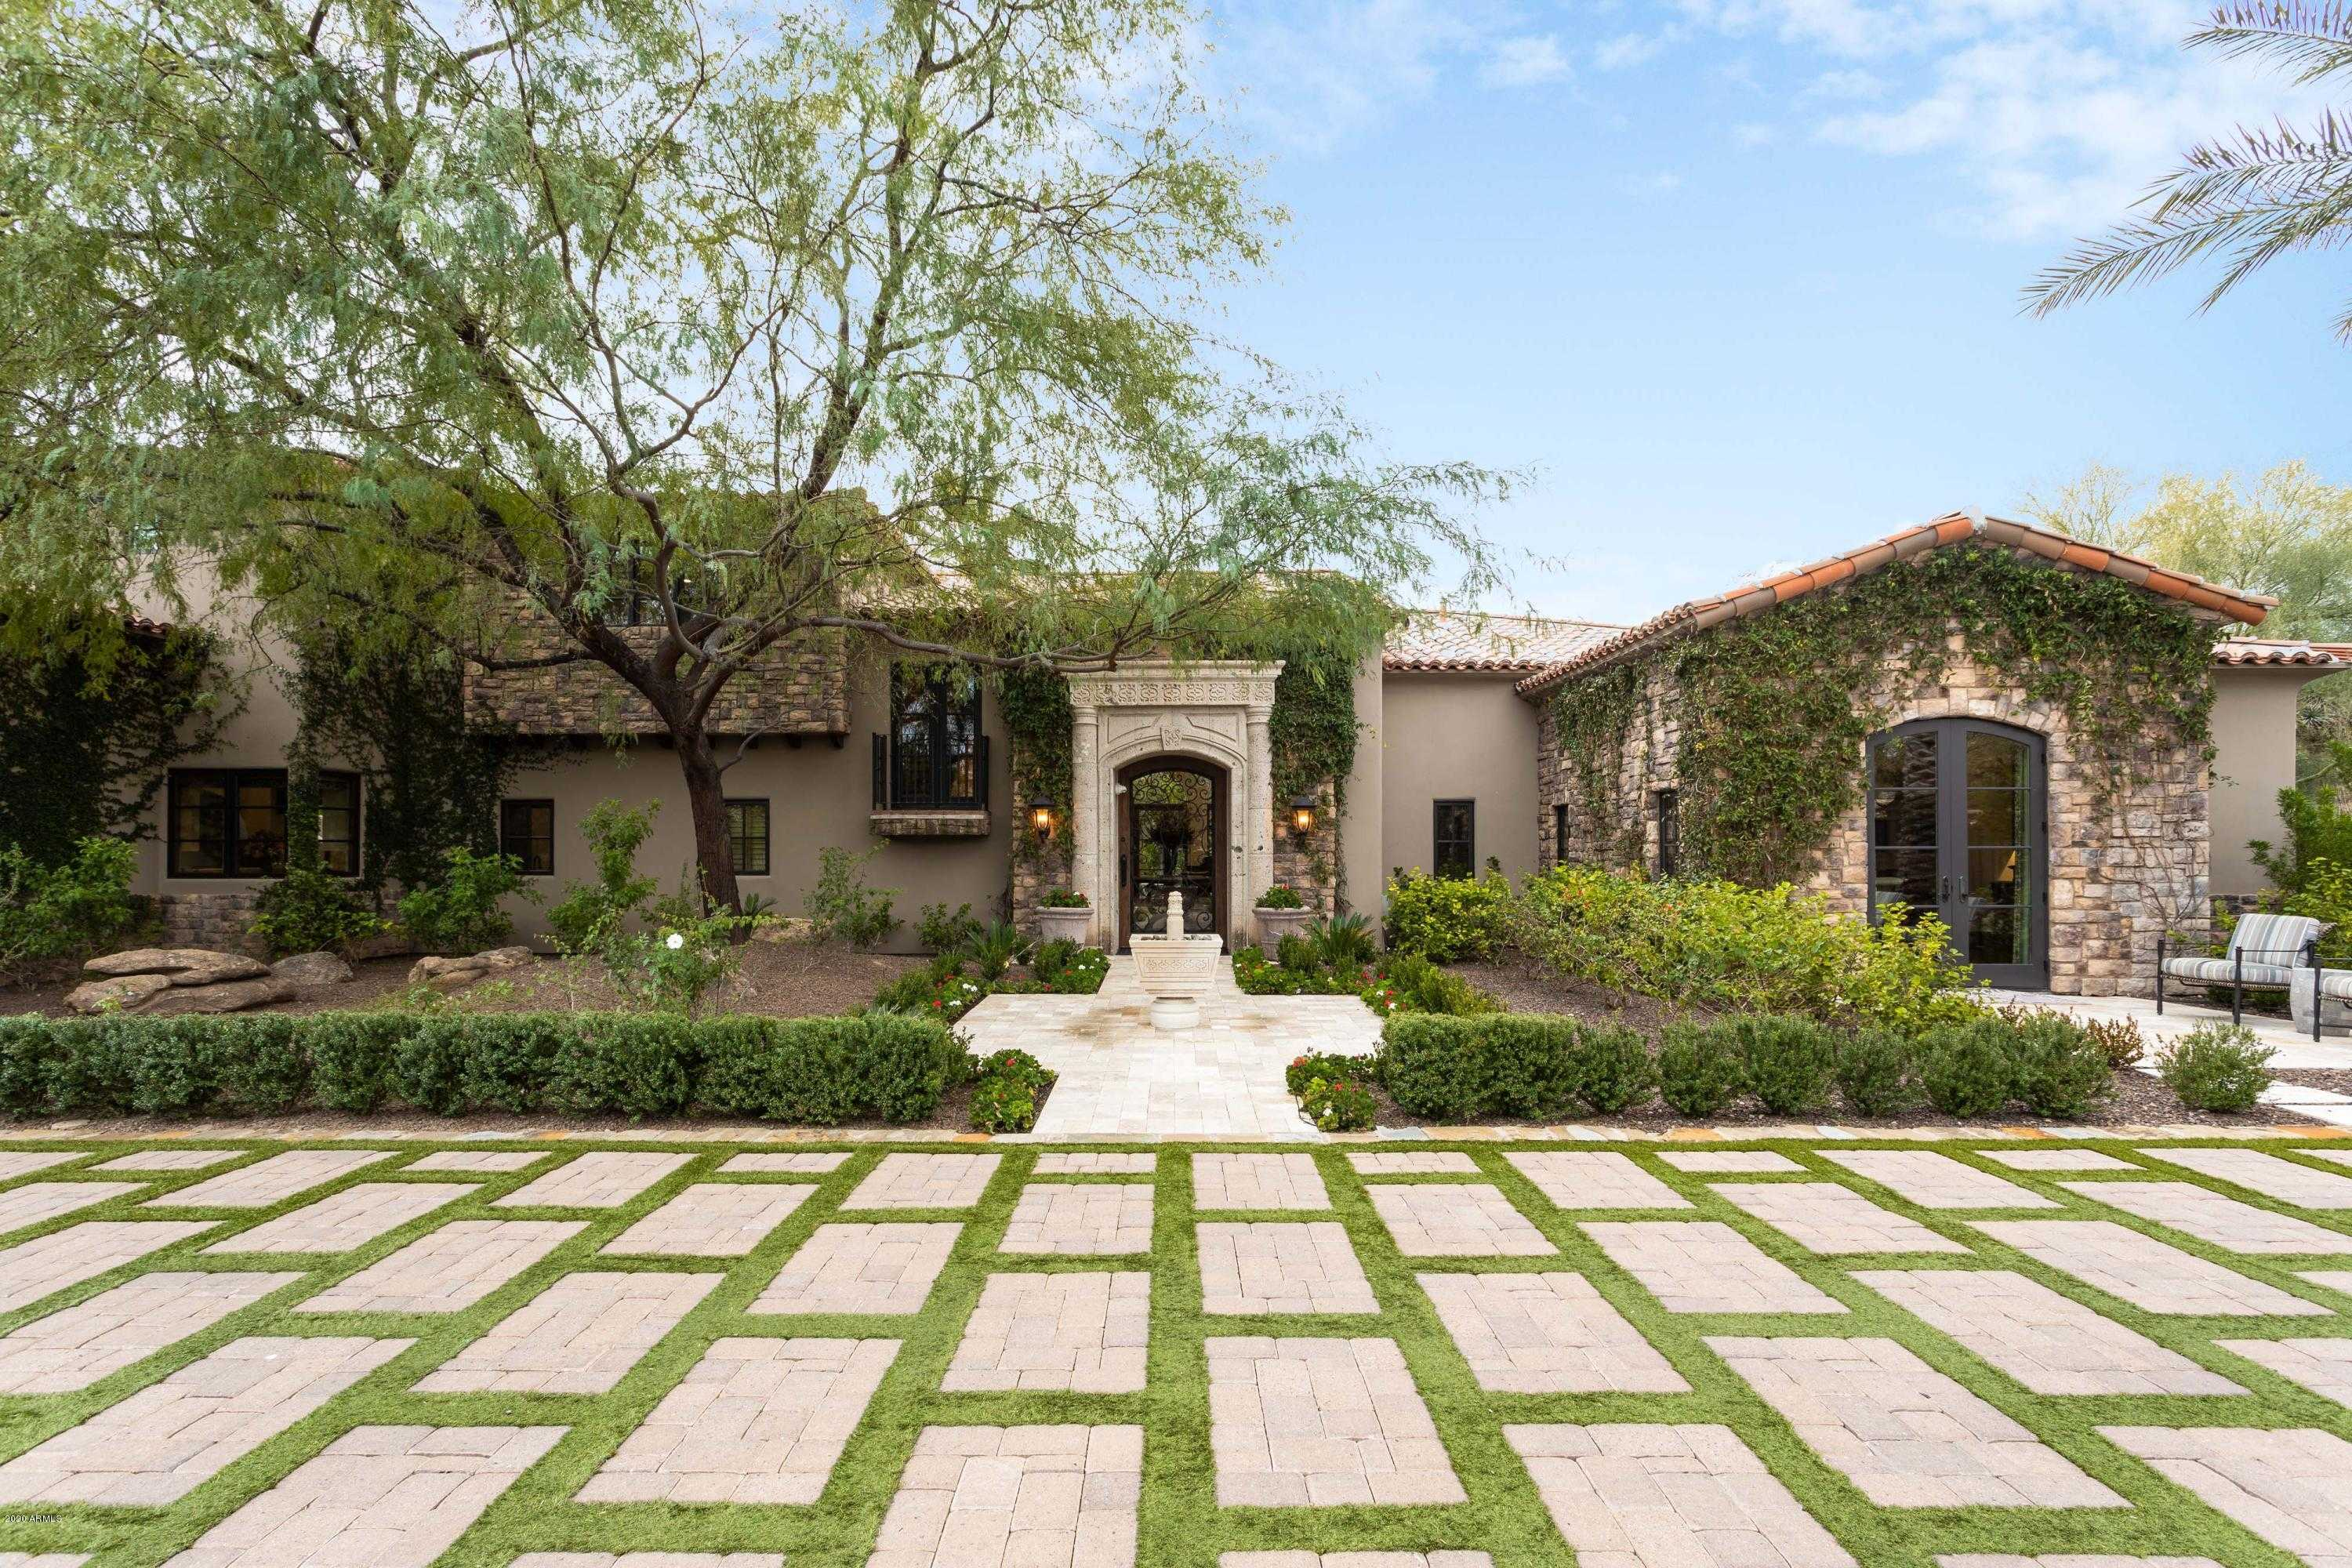 $5,499,000 - 7Br/10Ba - Home for Sale in Judson, Paradise Valley